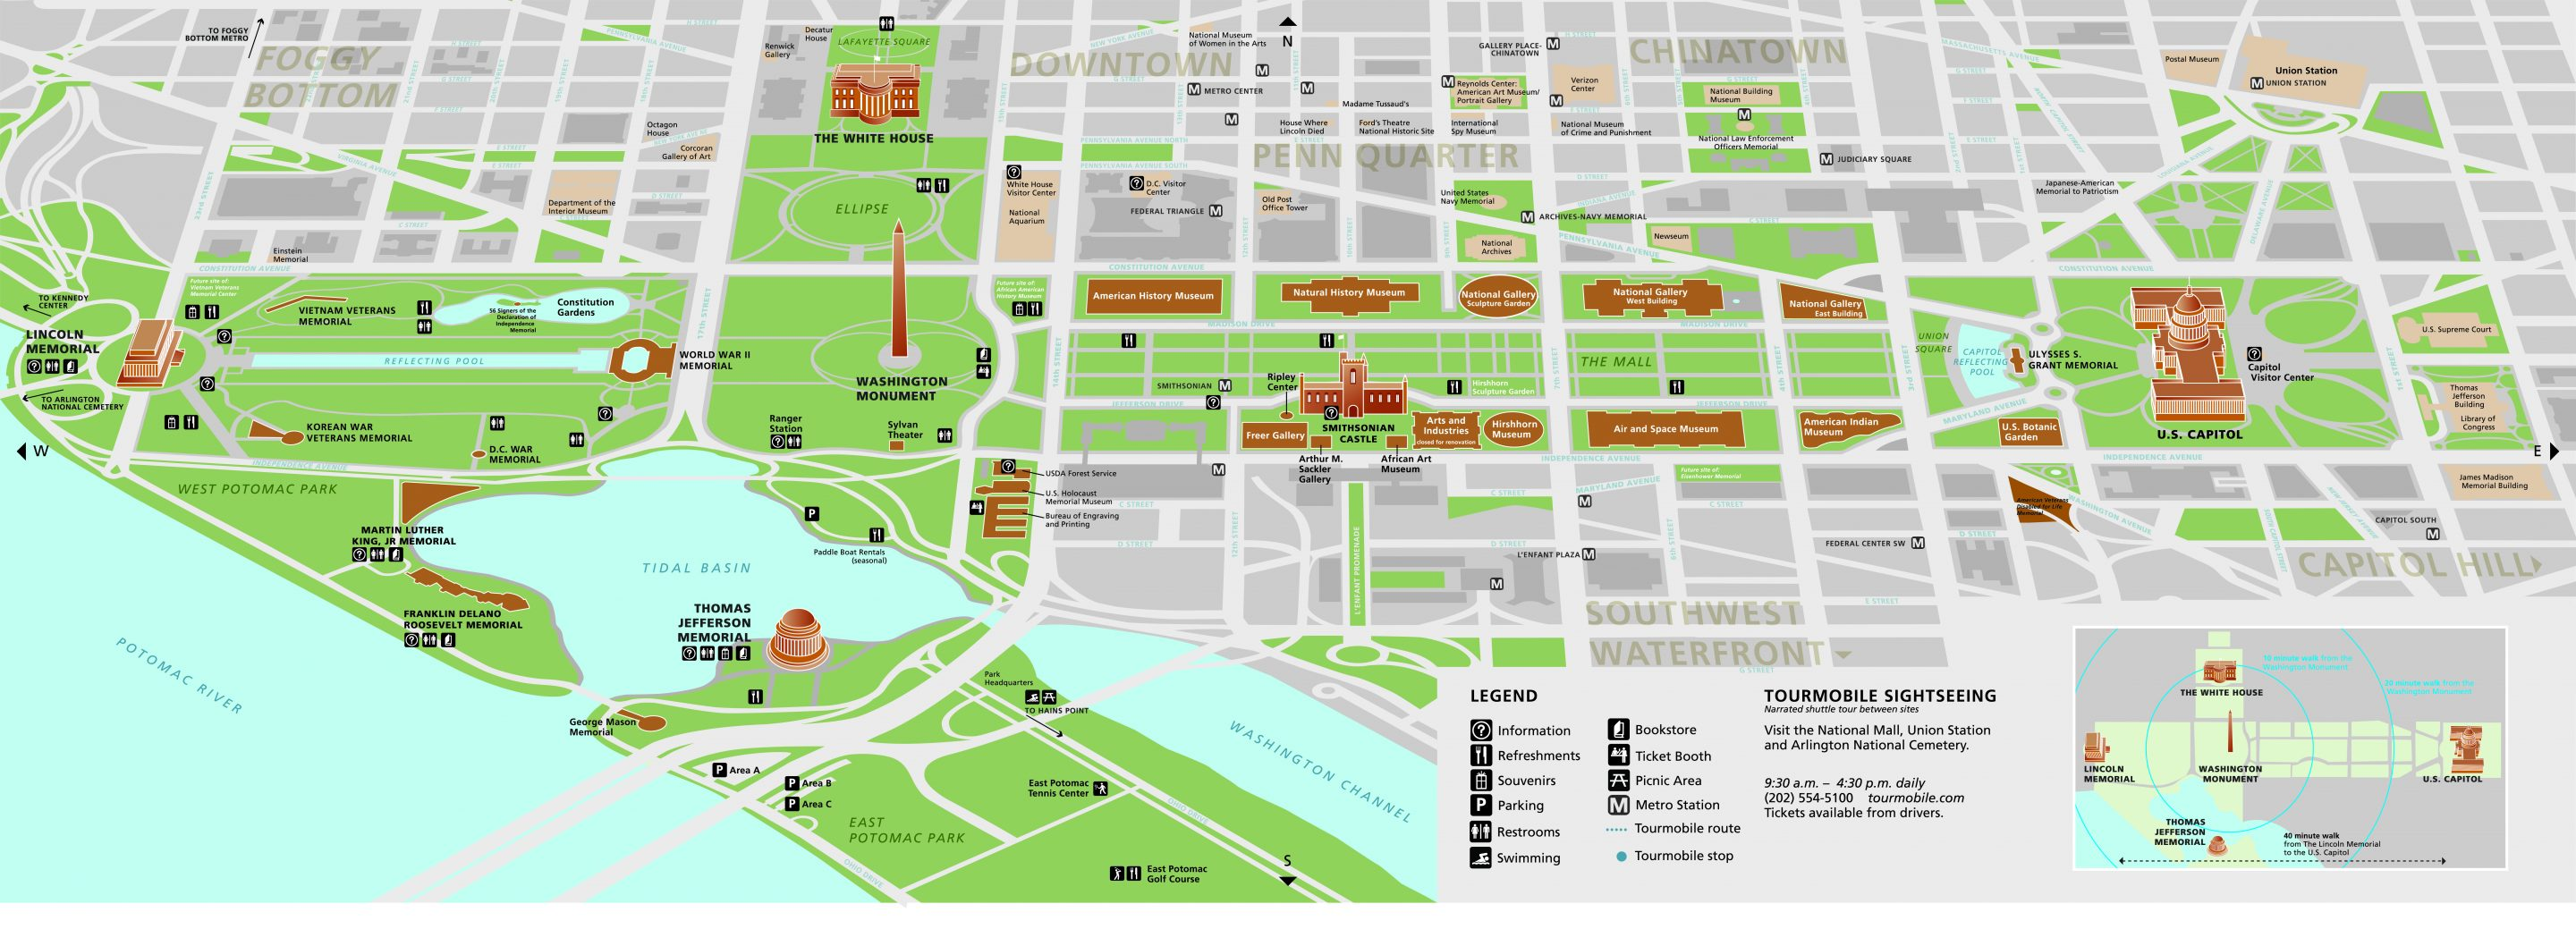 Map of the National Mall in Washington, D.C.